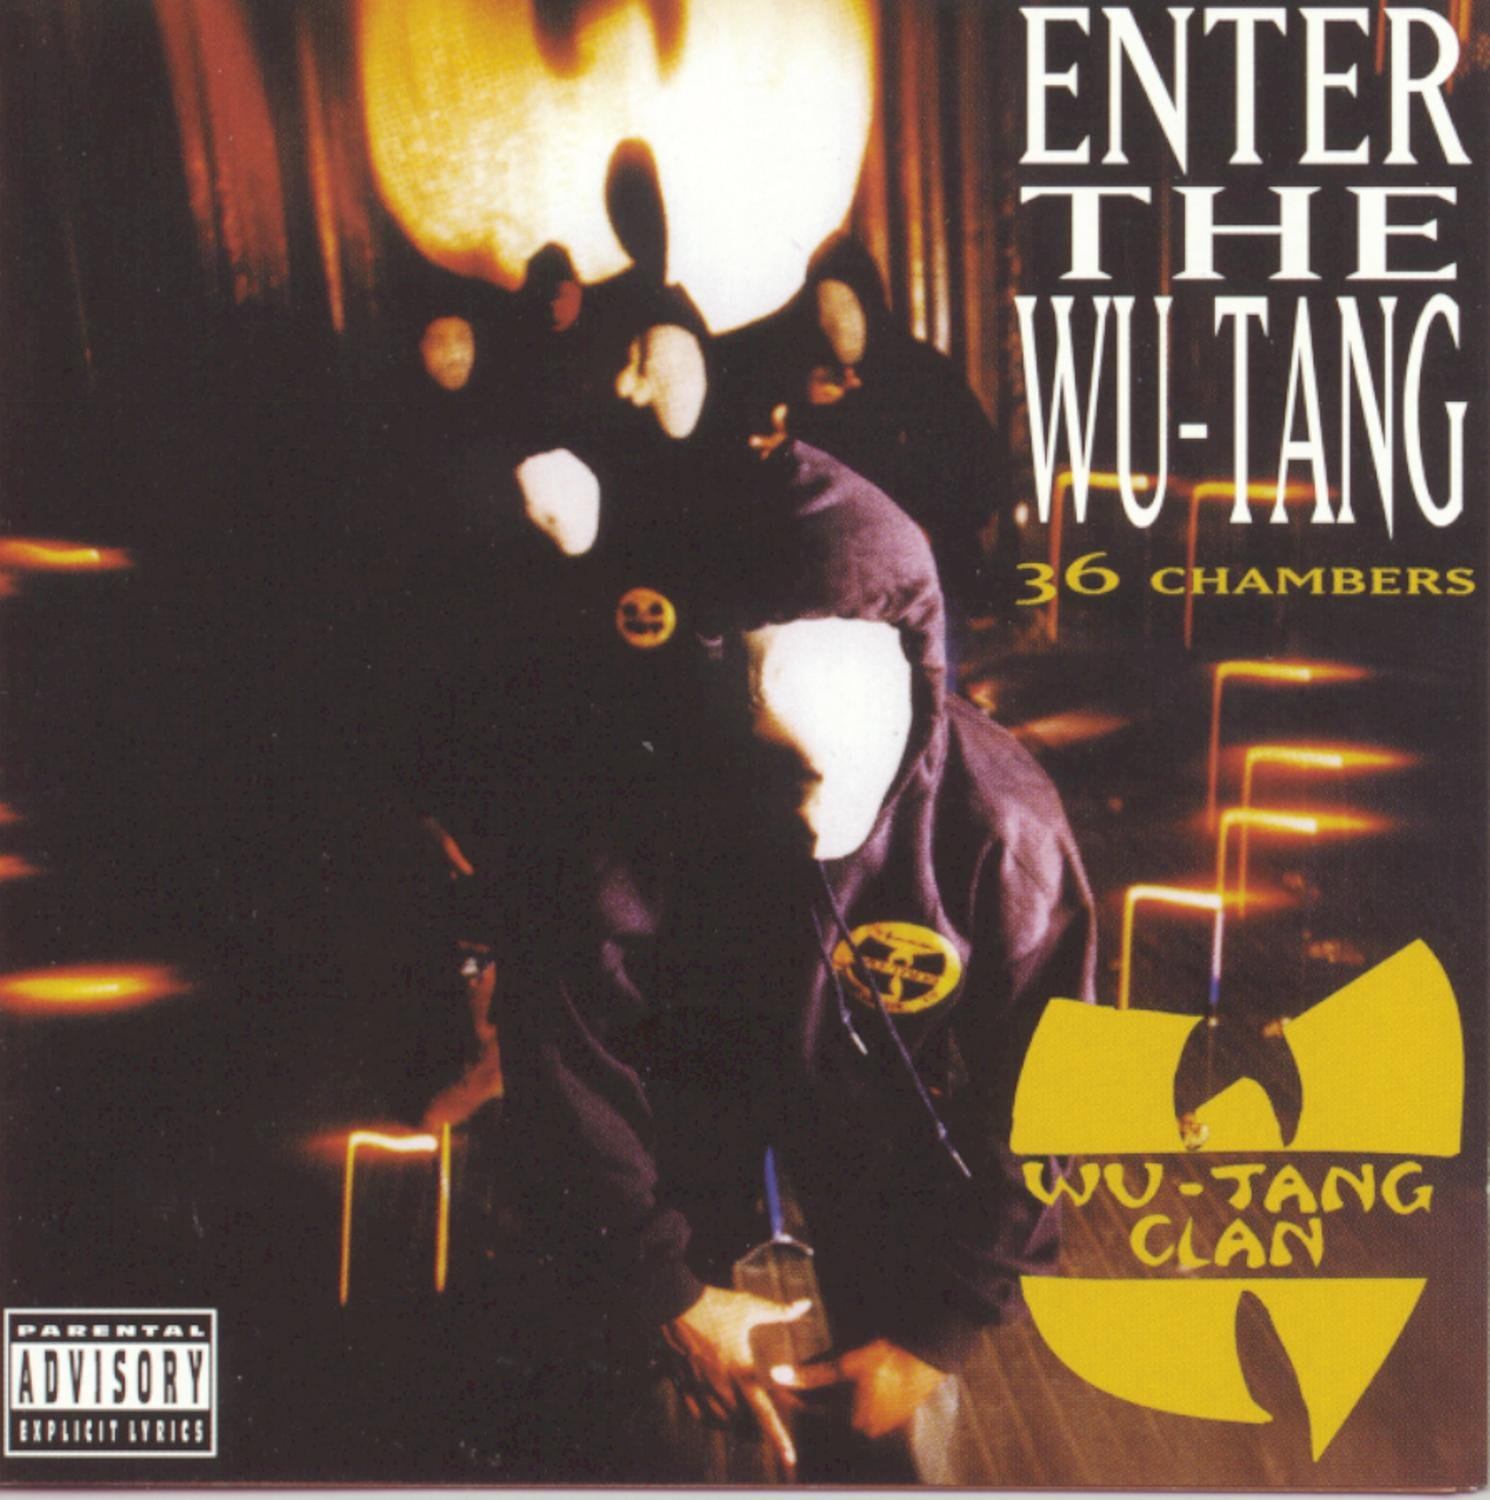 Wu-Tang – Enter the Wutang